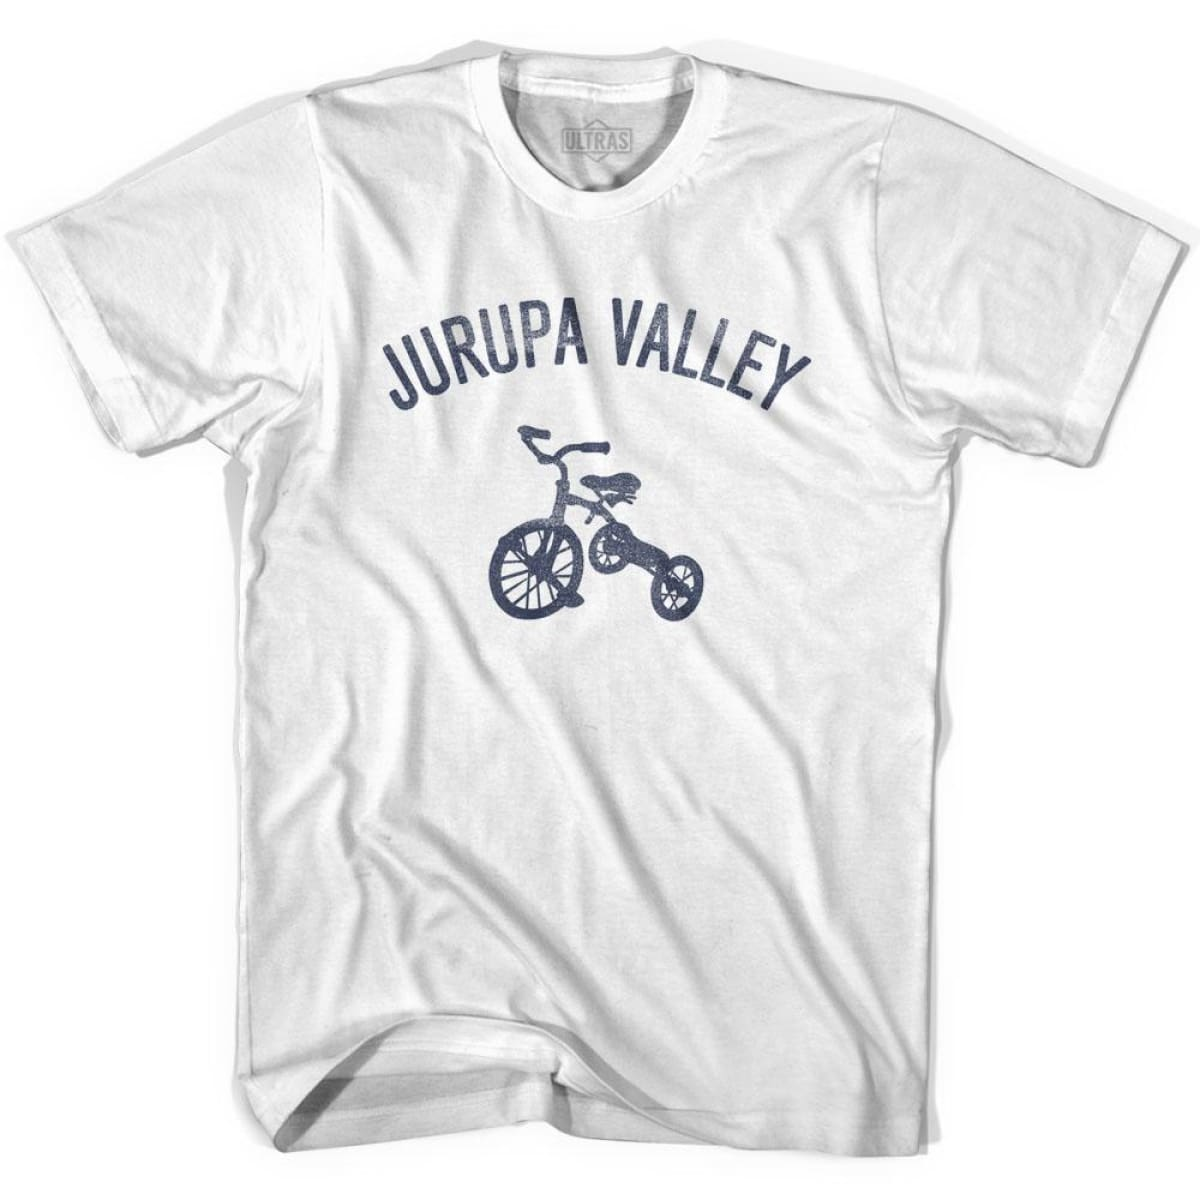 Jurupa Valley City Tricycle Womens Cotton T-shirt - Tricycle City